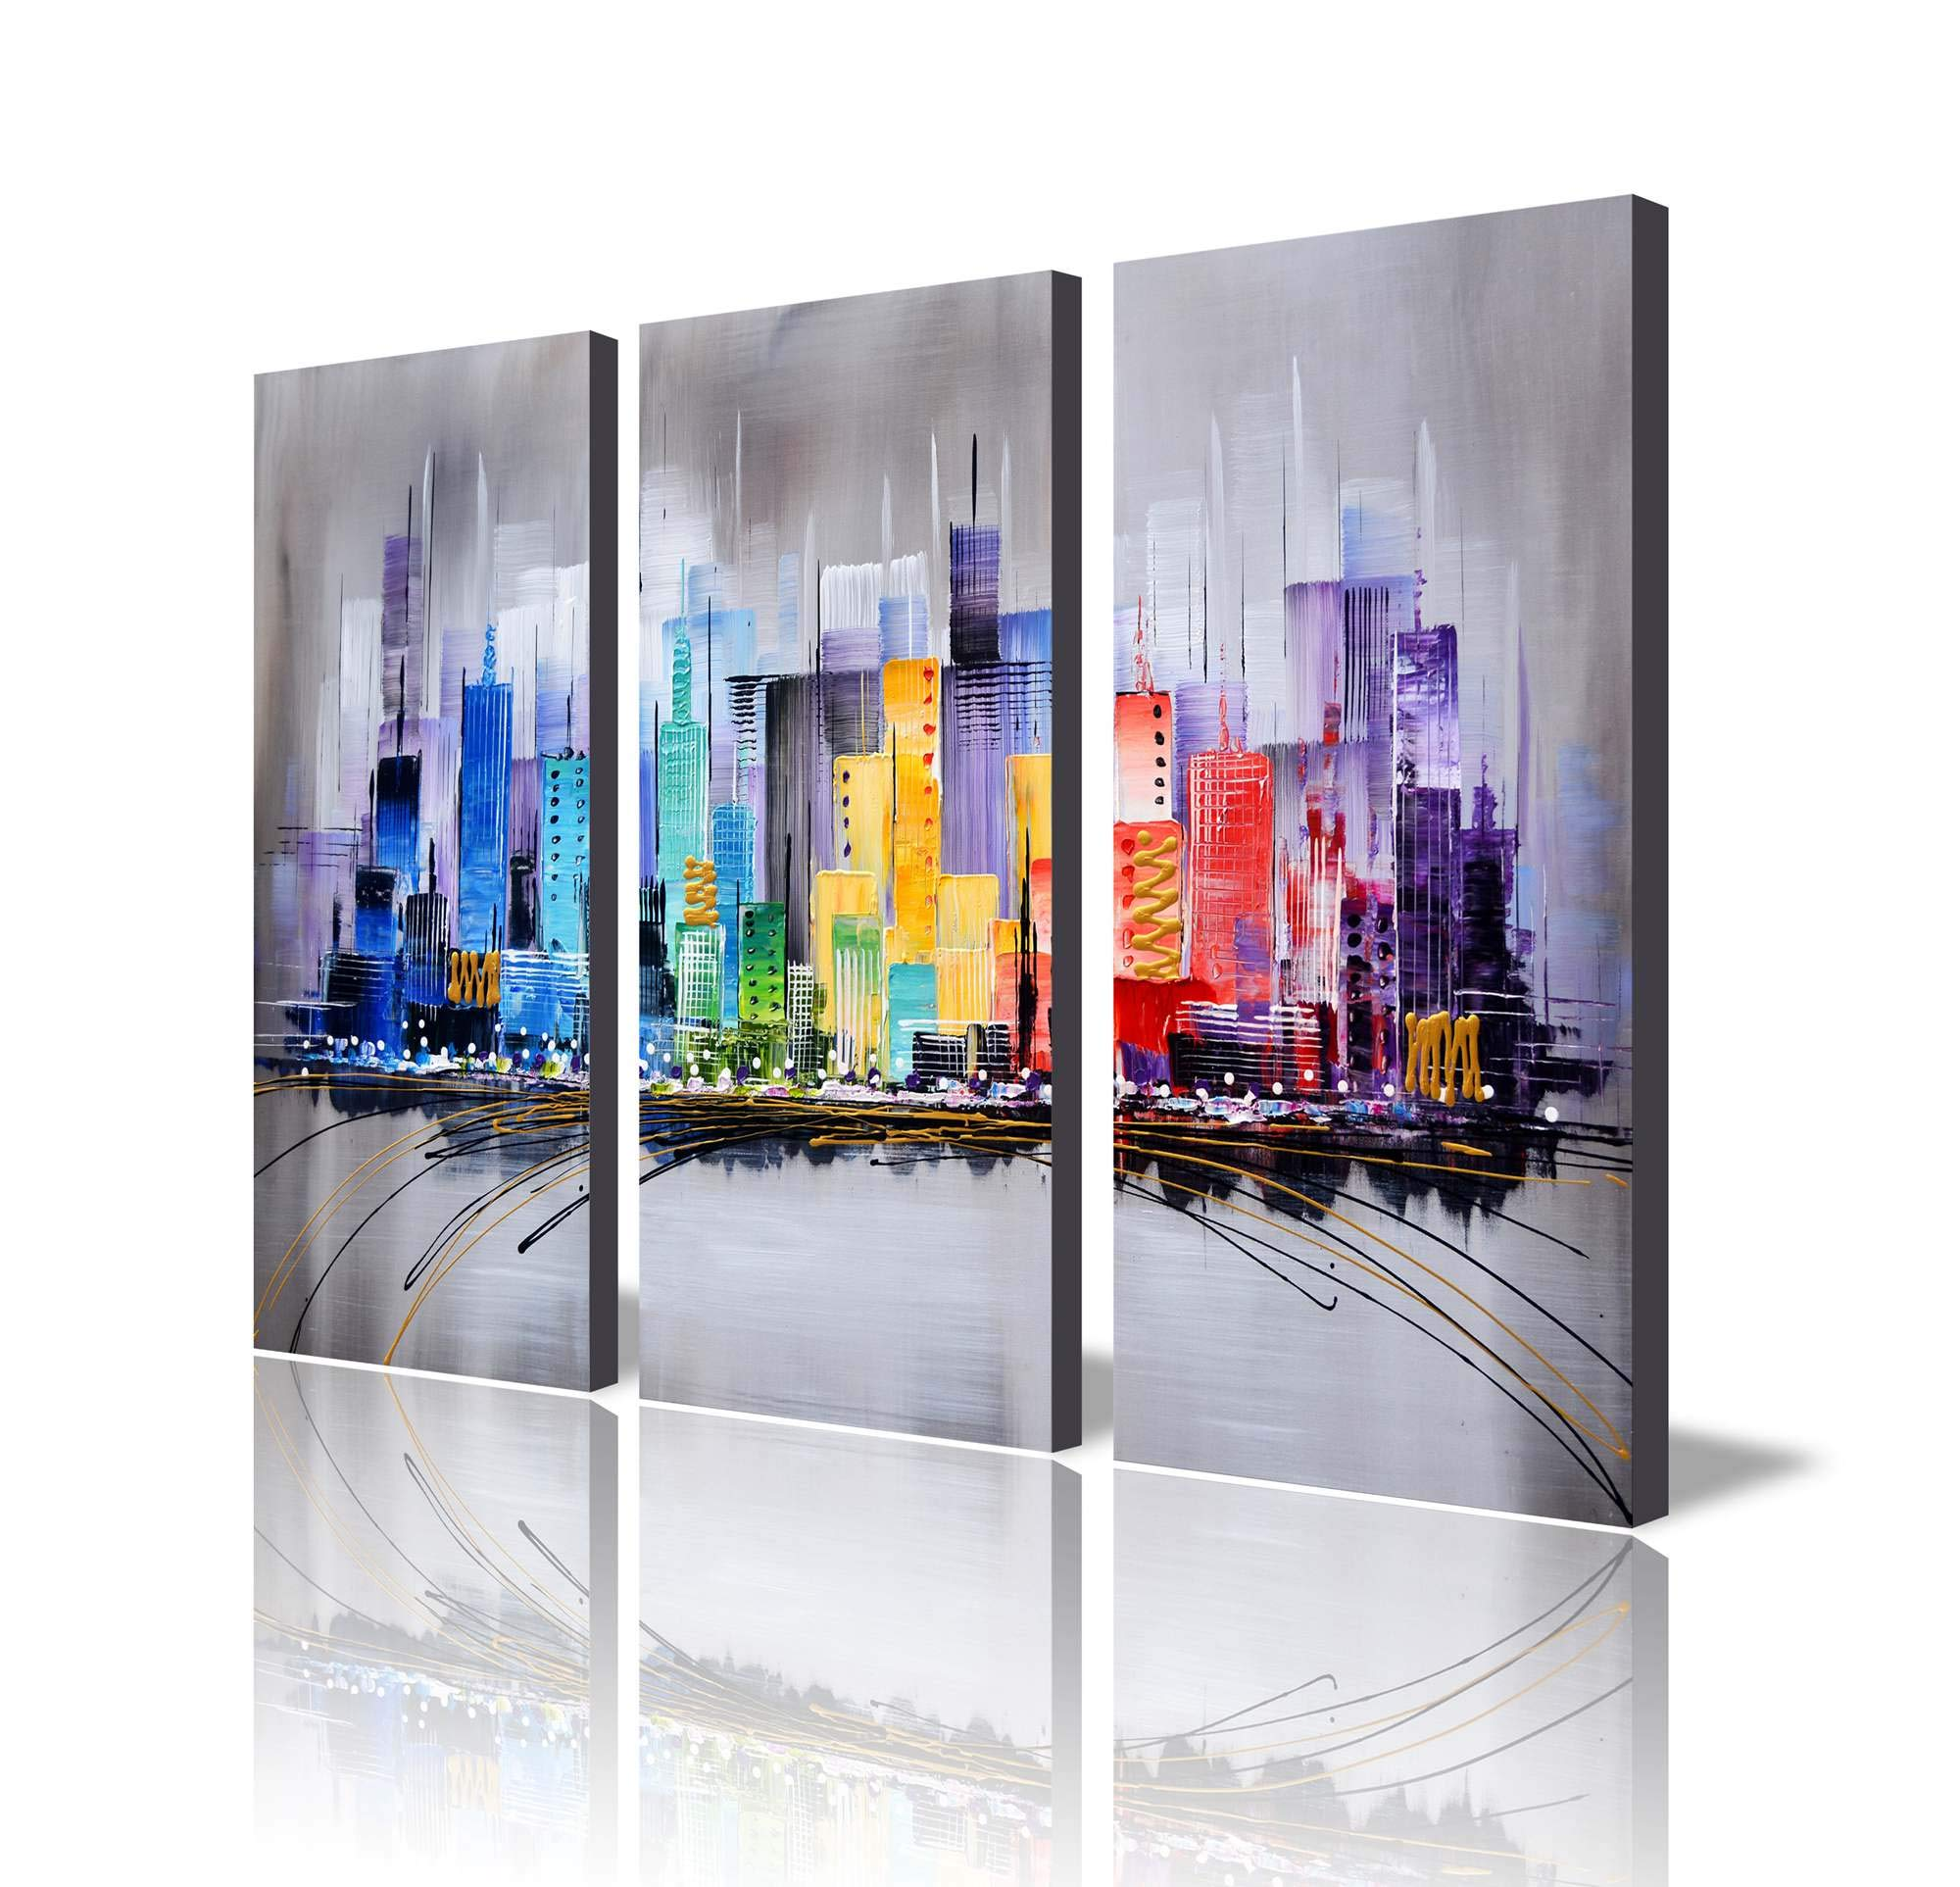 ARTLAND Modern 100% Hand Painted Framed Wall Art Colorful City 3-Piece Gallery-Wrapped Abstract Oil Painting on Canvas Ready to Hang for Living Room for Wall Decor Home Decoration 32x48inches